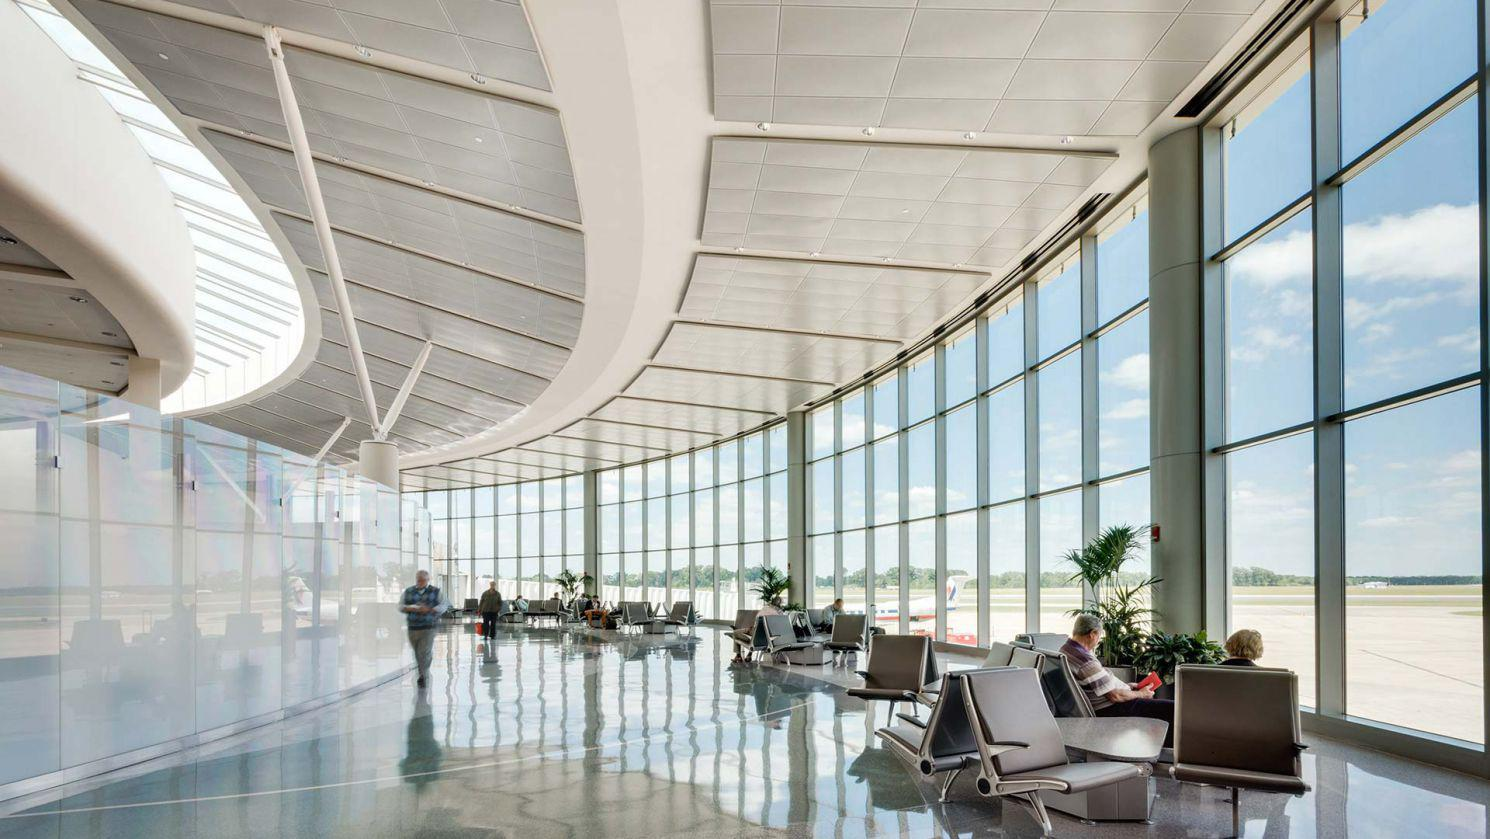 Interior image of new Baton Rouge Metropolitan Airport terminal expansion architecture